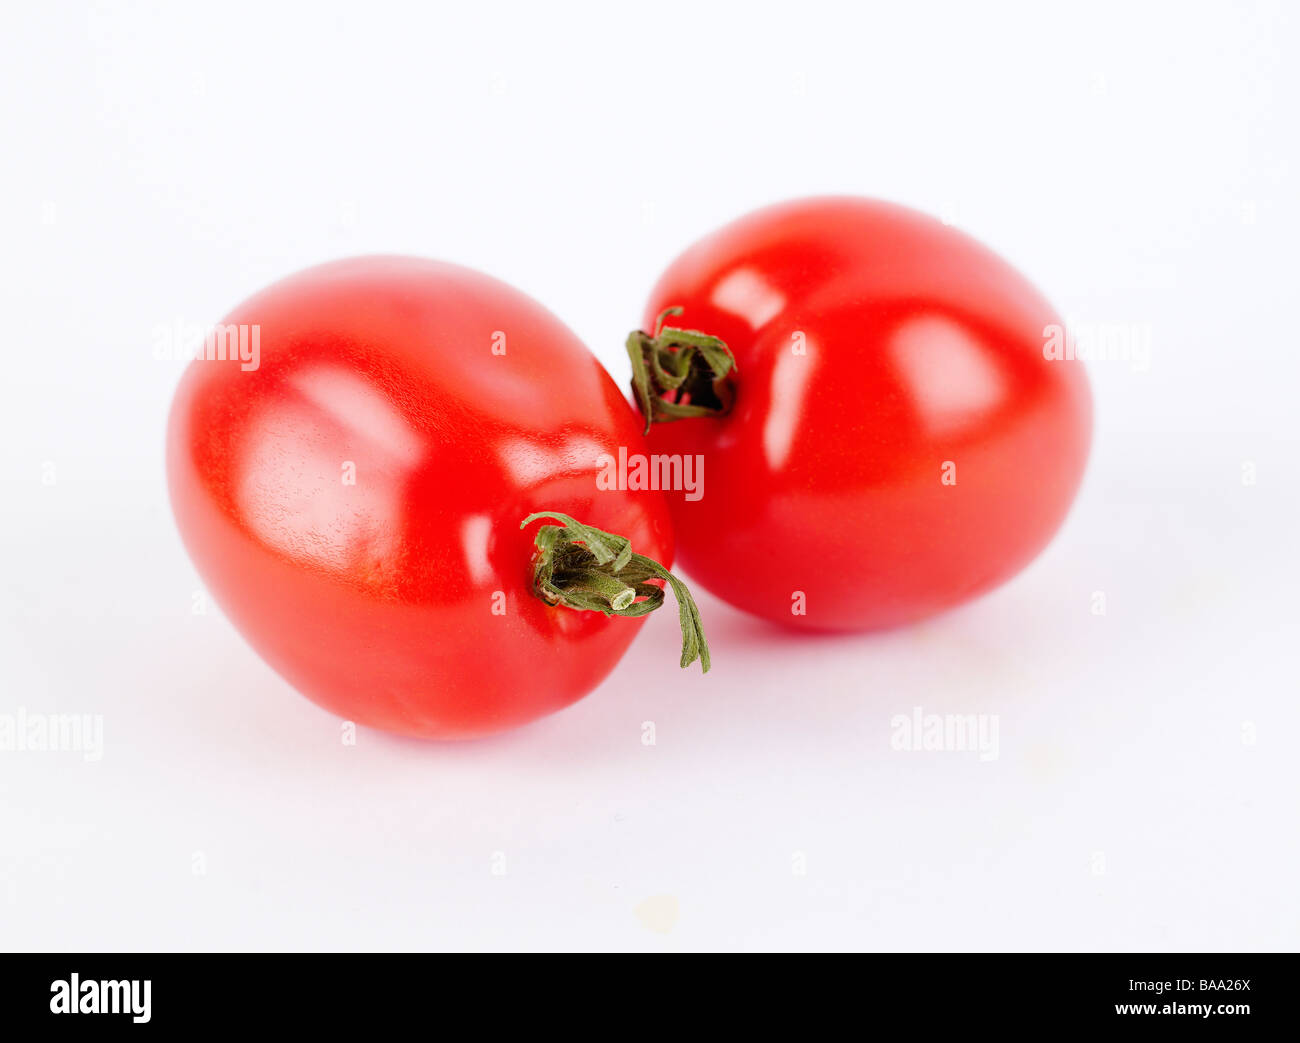 Tomatoes, Sweden. - Stock Image